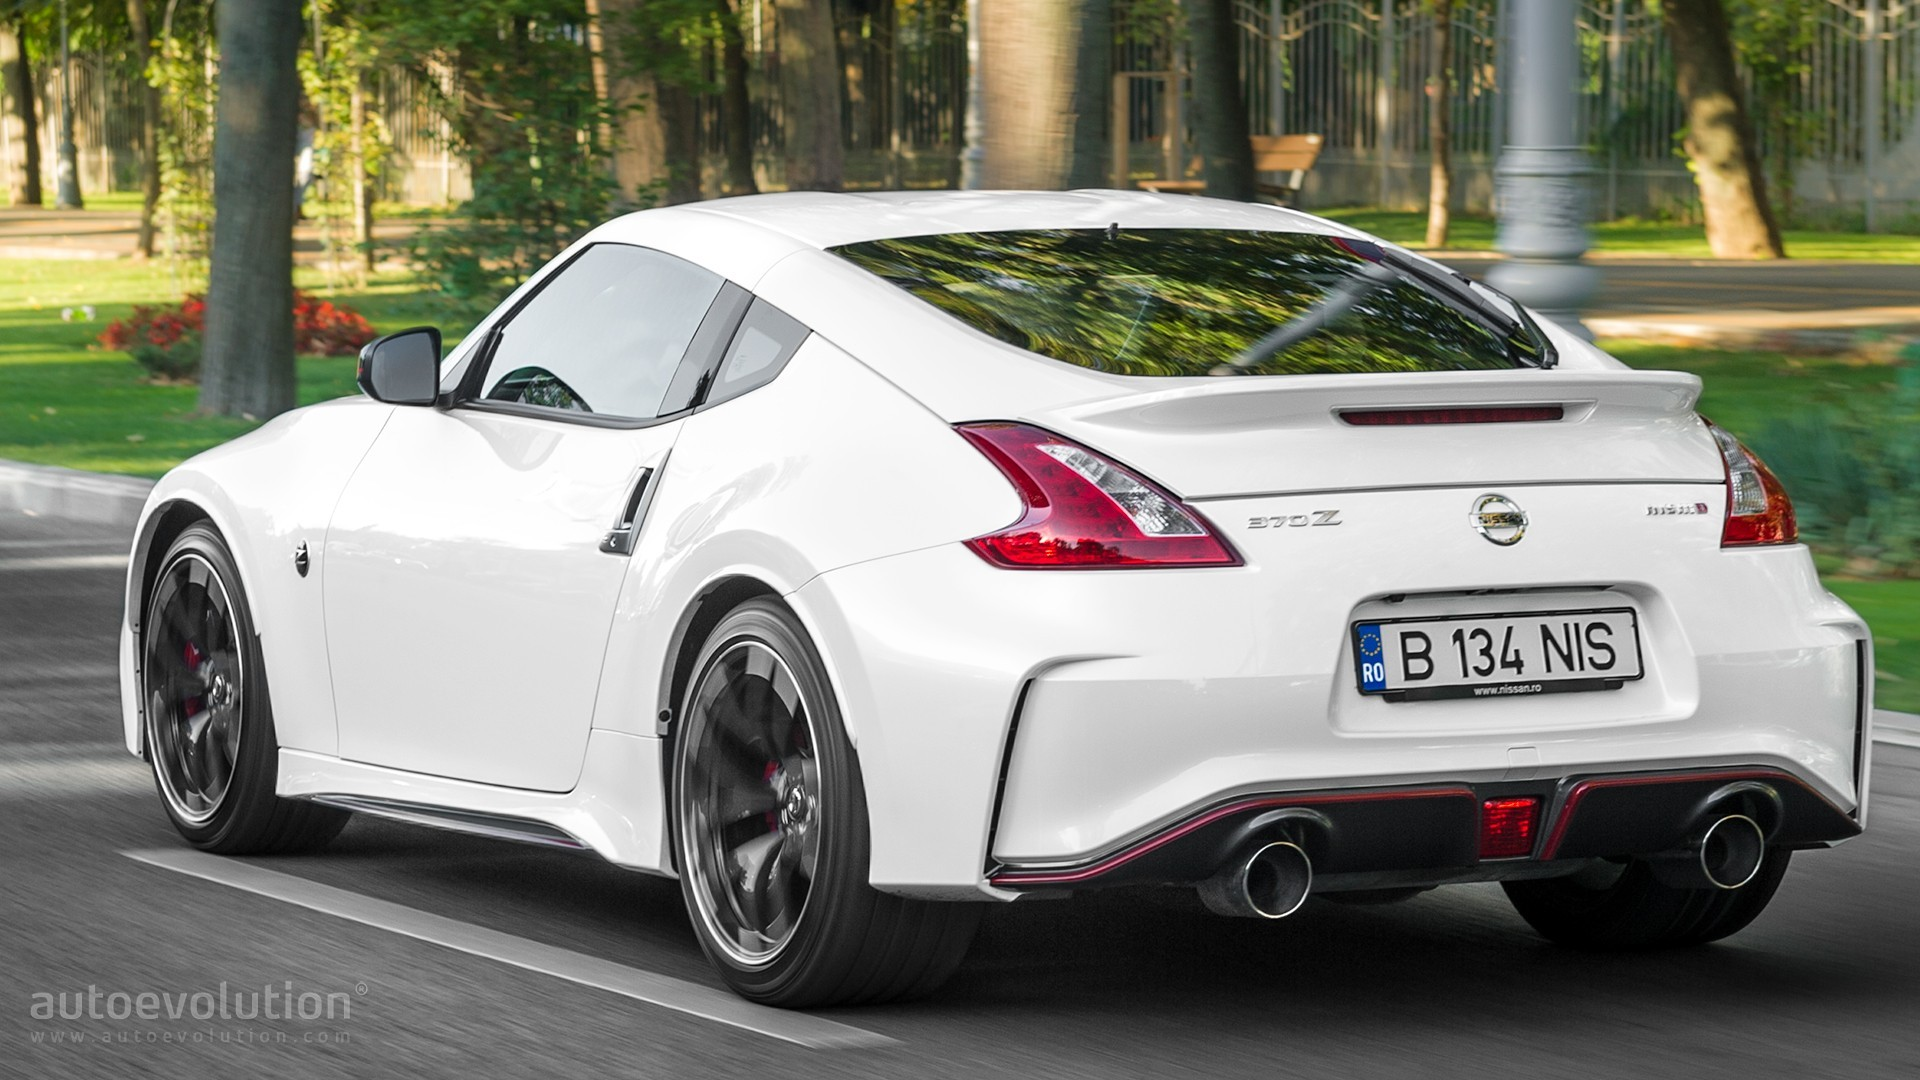 Sports Car 2015 Wallpaper Nissan 370z Replacement Being Shown In Tokyo With 2017 Gt